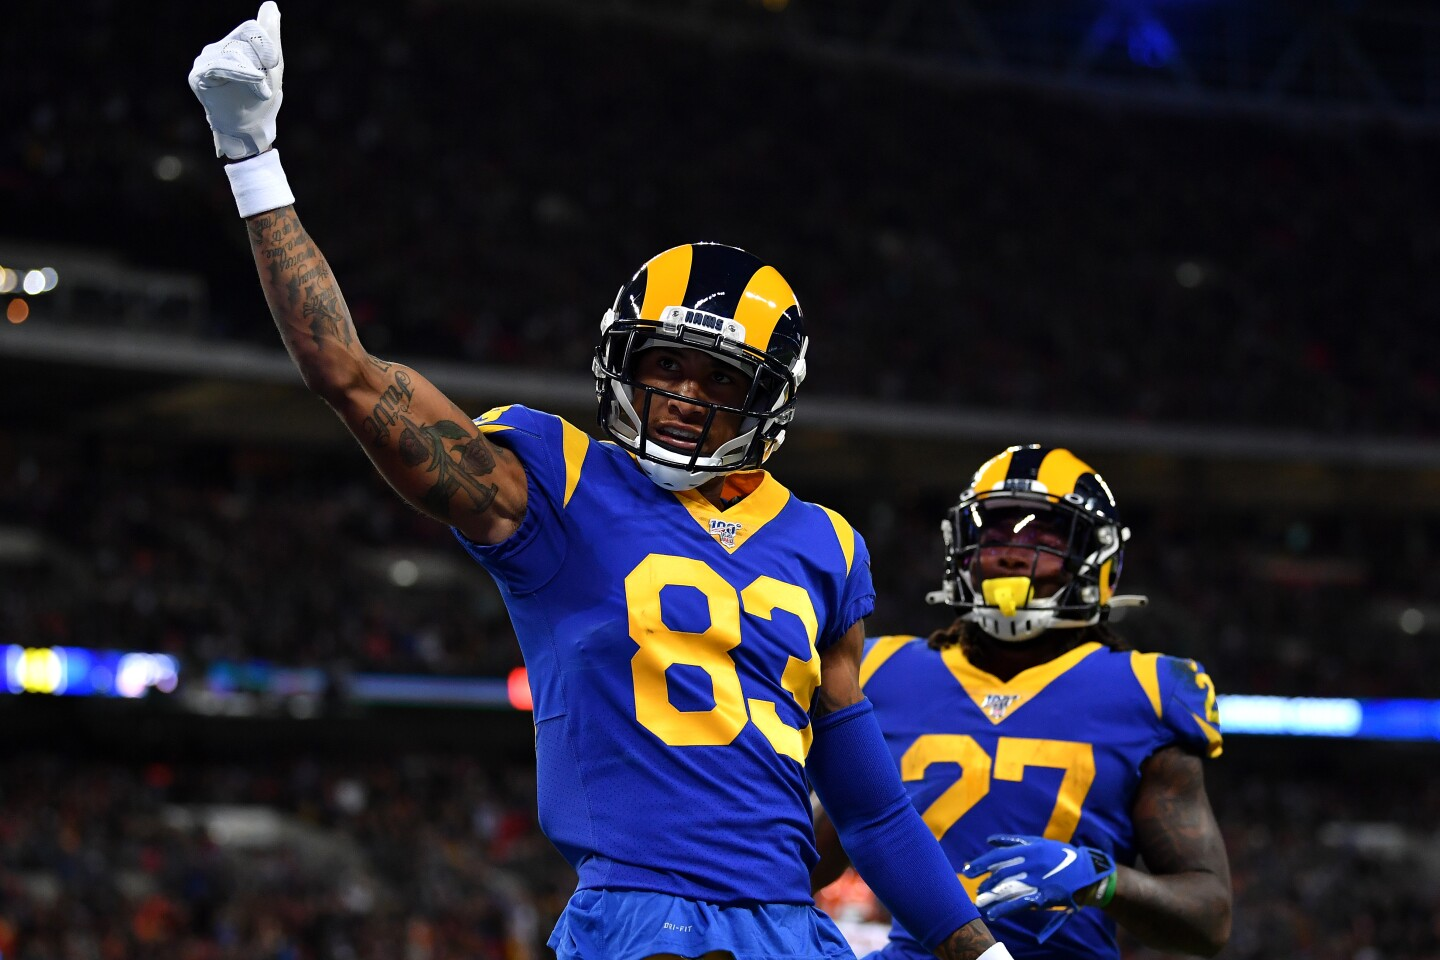 LONDON, ENGLAND - OCTOBER 27: Josh Reynolds #83 of the Los Angeles Rams celebrates scoring a touch down during the NFL London Games series match between the Cincinnati Bengals and the Los Angeles Rams at Wembley Stadium on October 27, 2019 in London, England. (Photo by Justin Setterfield/Getty Images)